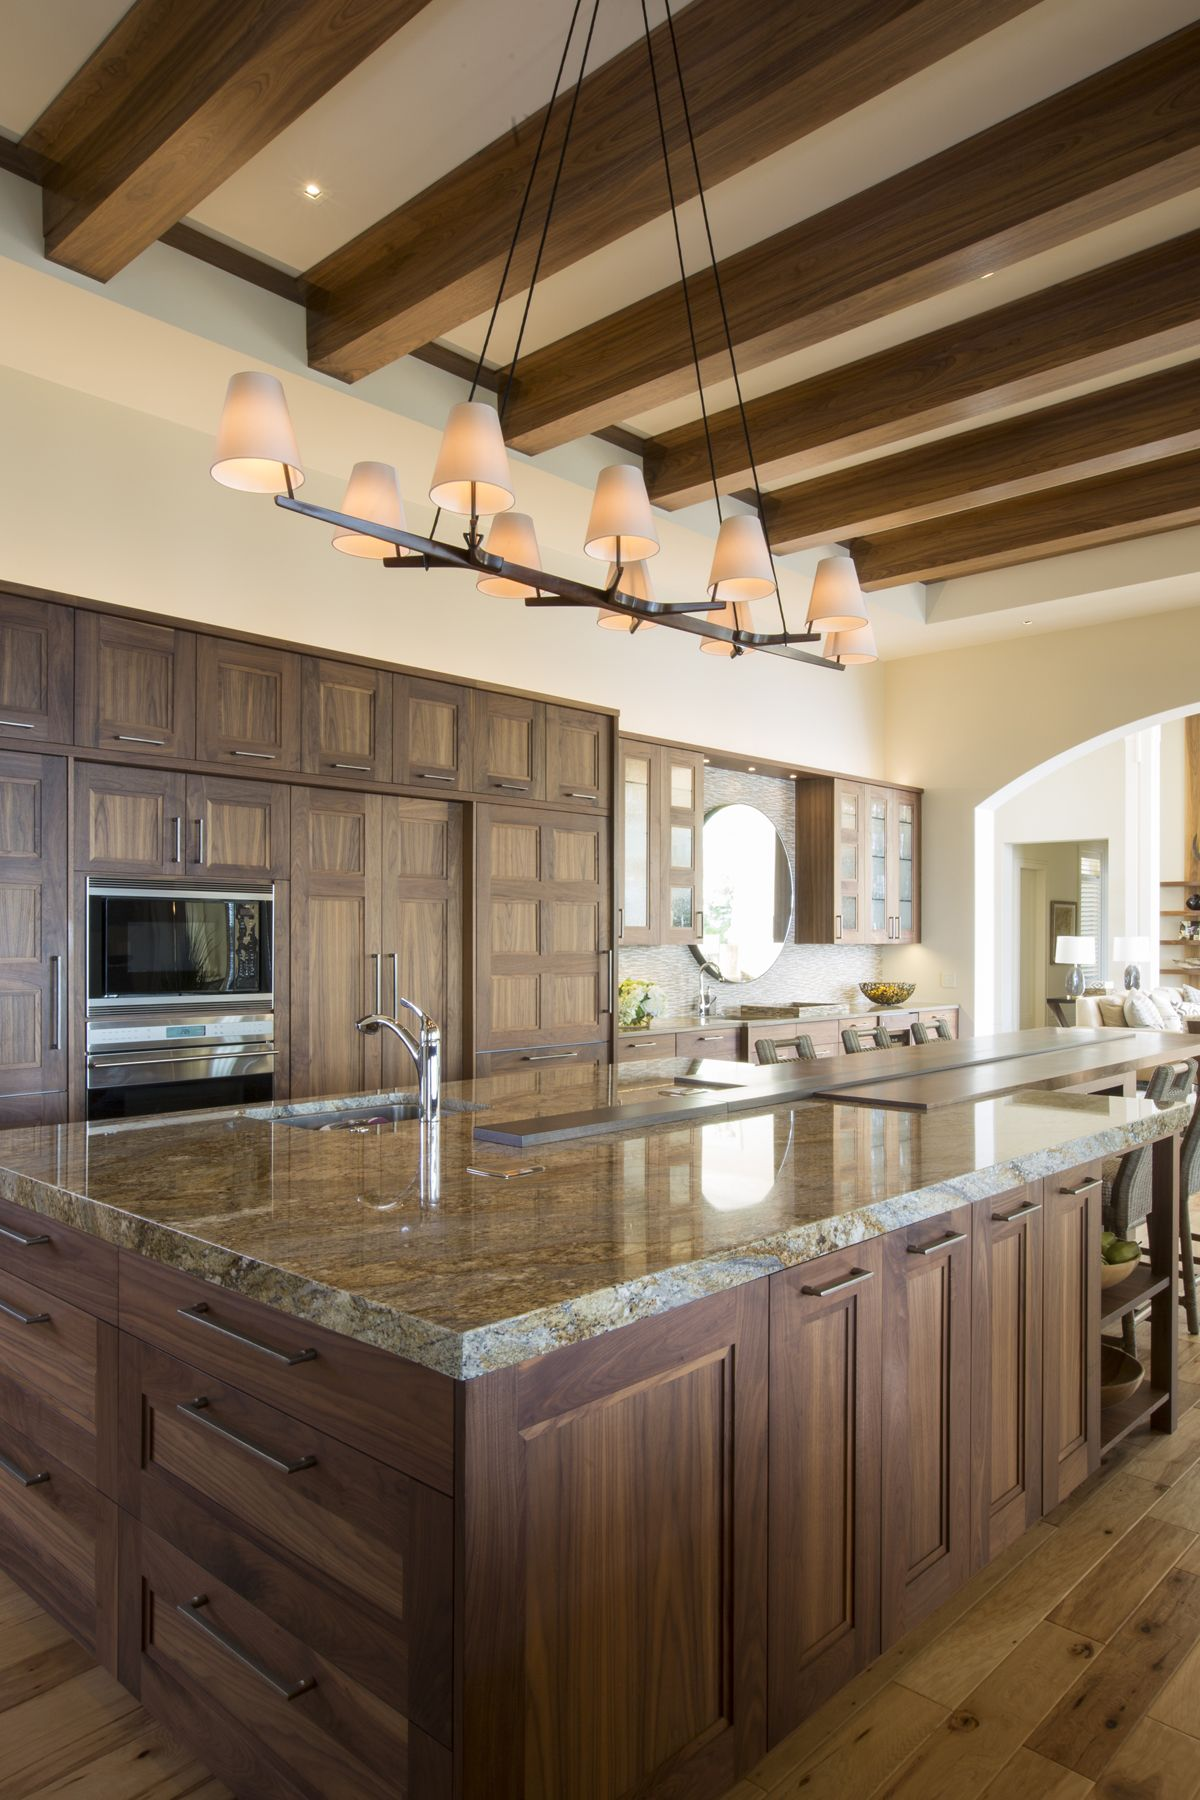 Transitional Kitchen Features High Ceilings With Exposed Beams Fully Custom Natural Walnut Transitional Kitchen Design Kitchen Design Cheap Kitchen Cabinets